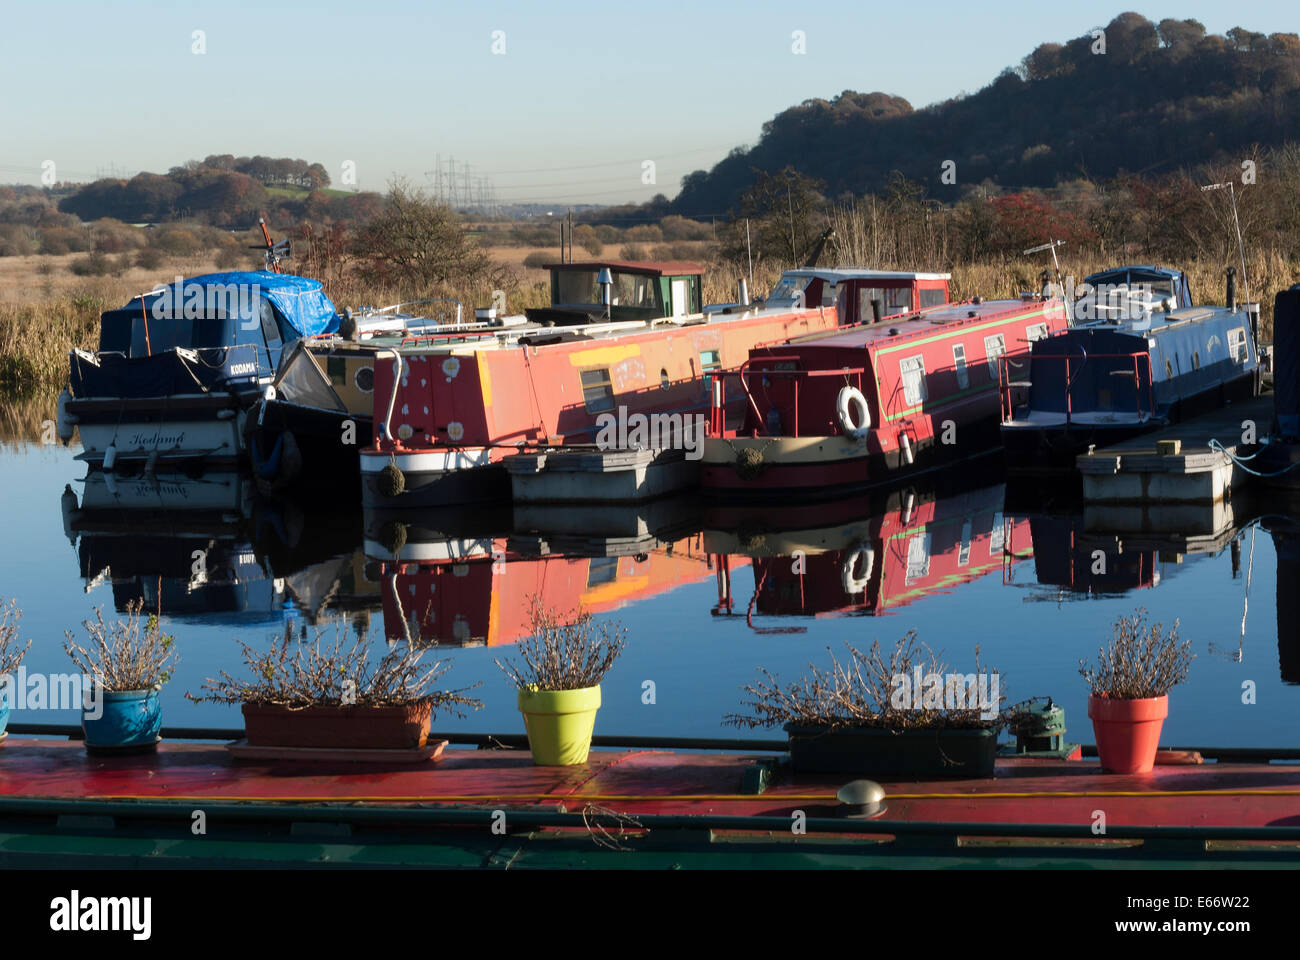 Canal Boats moored at Auchinstarry Marina on the Forth & Clyde Canal. - Stock Image